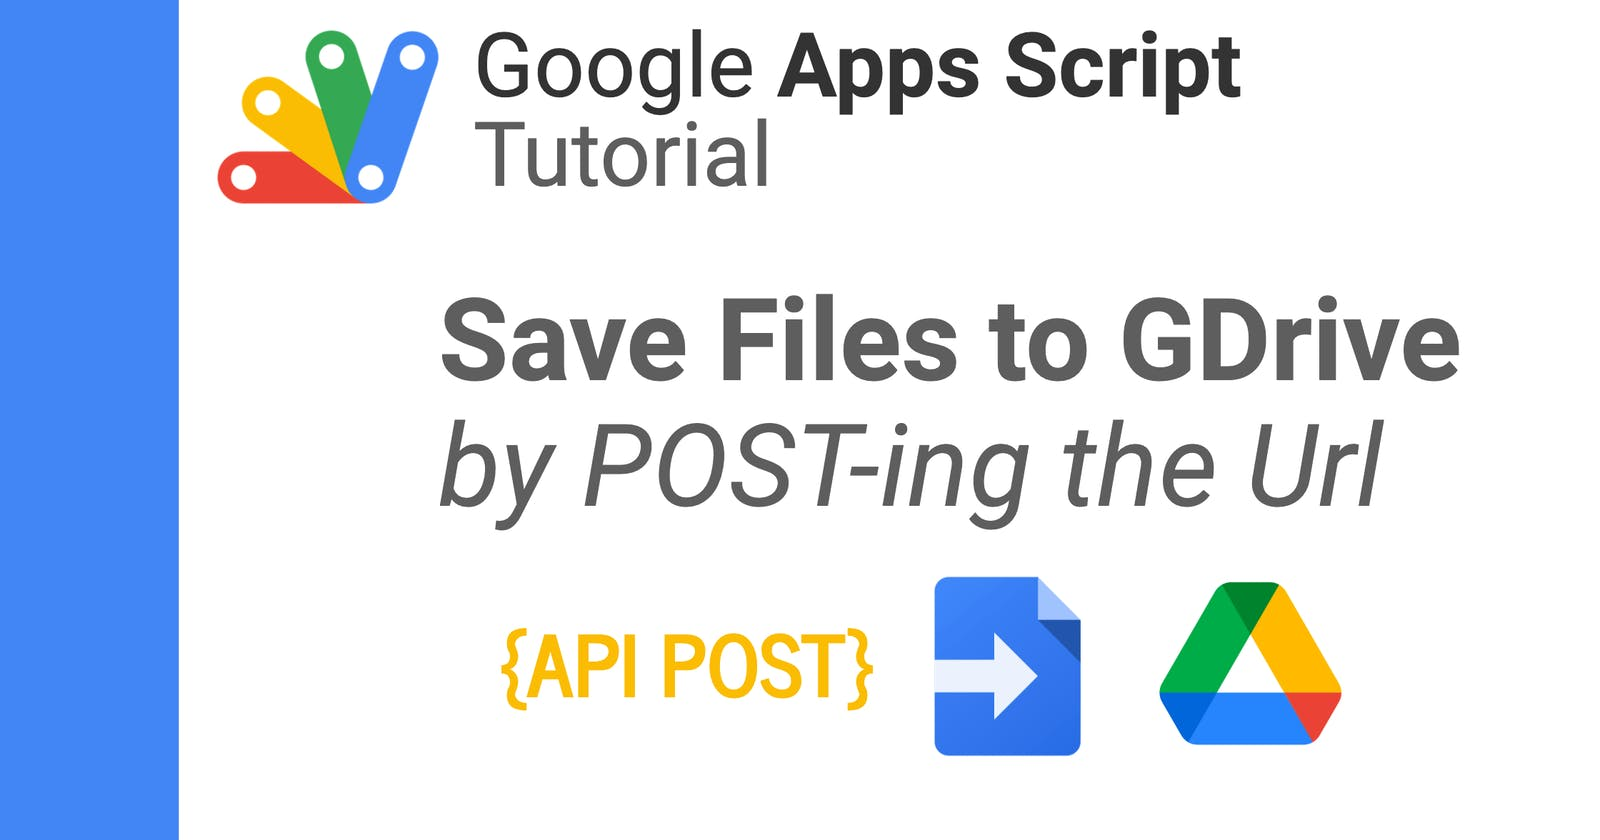 Saving Files to Google Drive by POST-ing the Url to a Web App